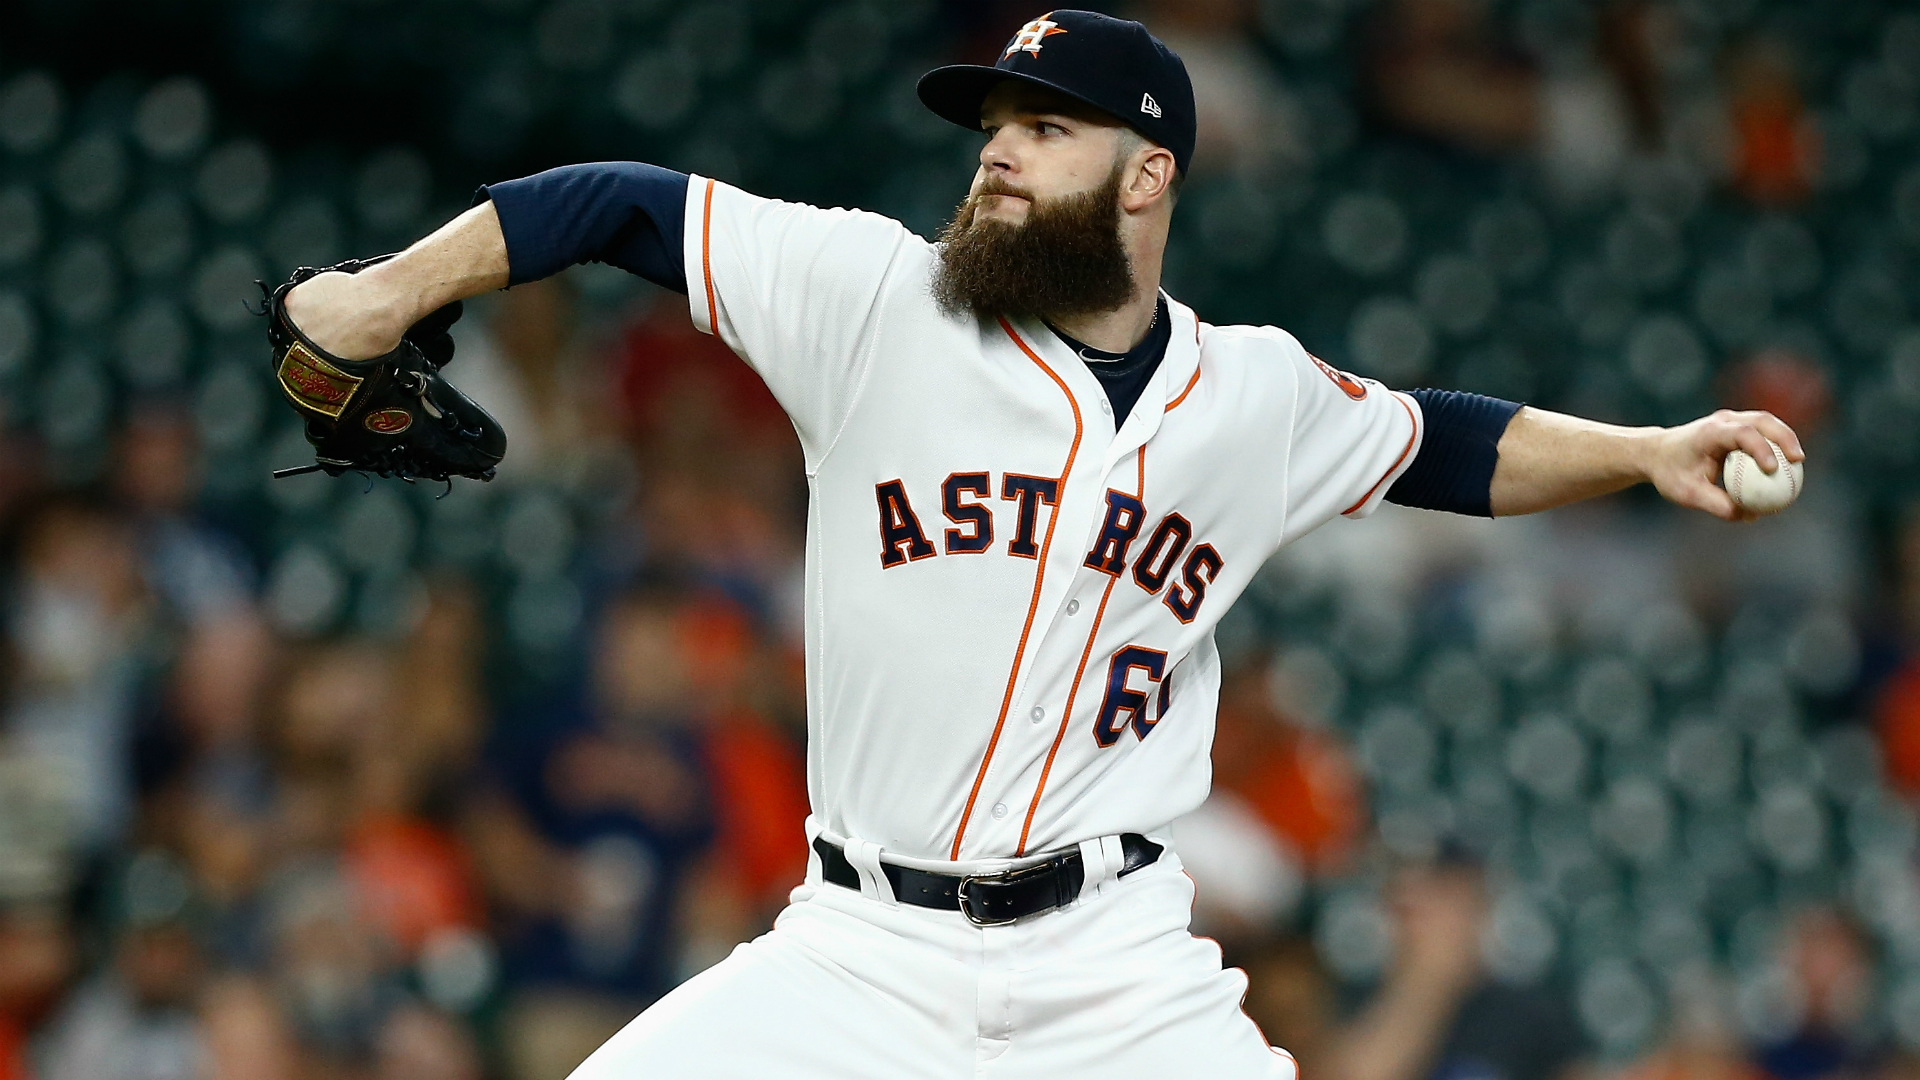 Keuchel has had an extended stay in free agency after registering a 12-11 record and a 3.74 ERA in 34 starts with the Astros last season.